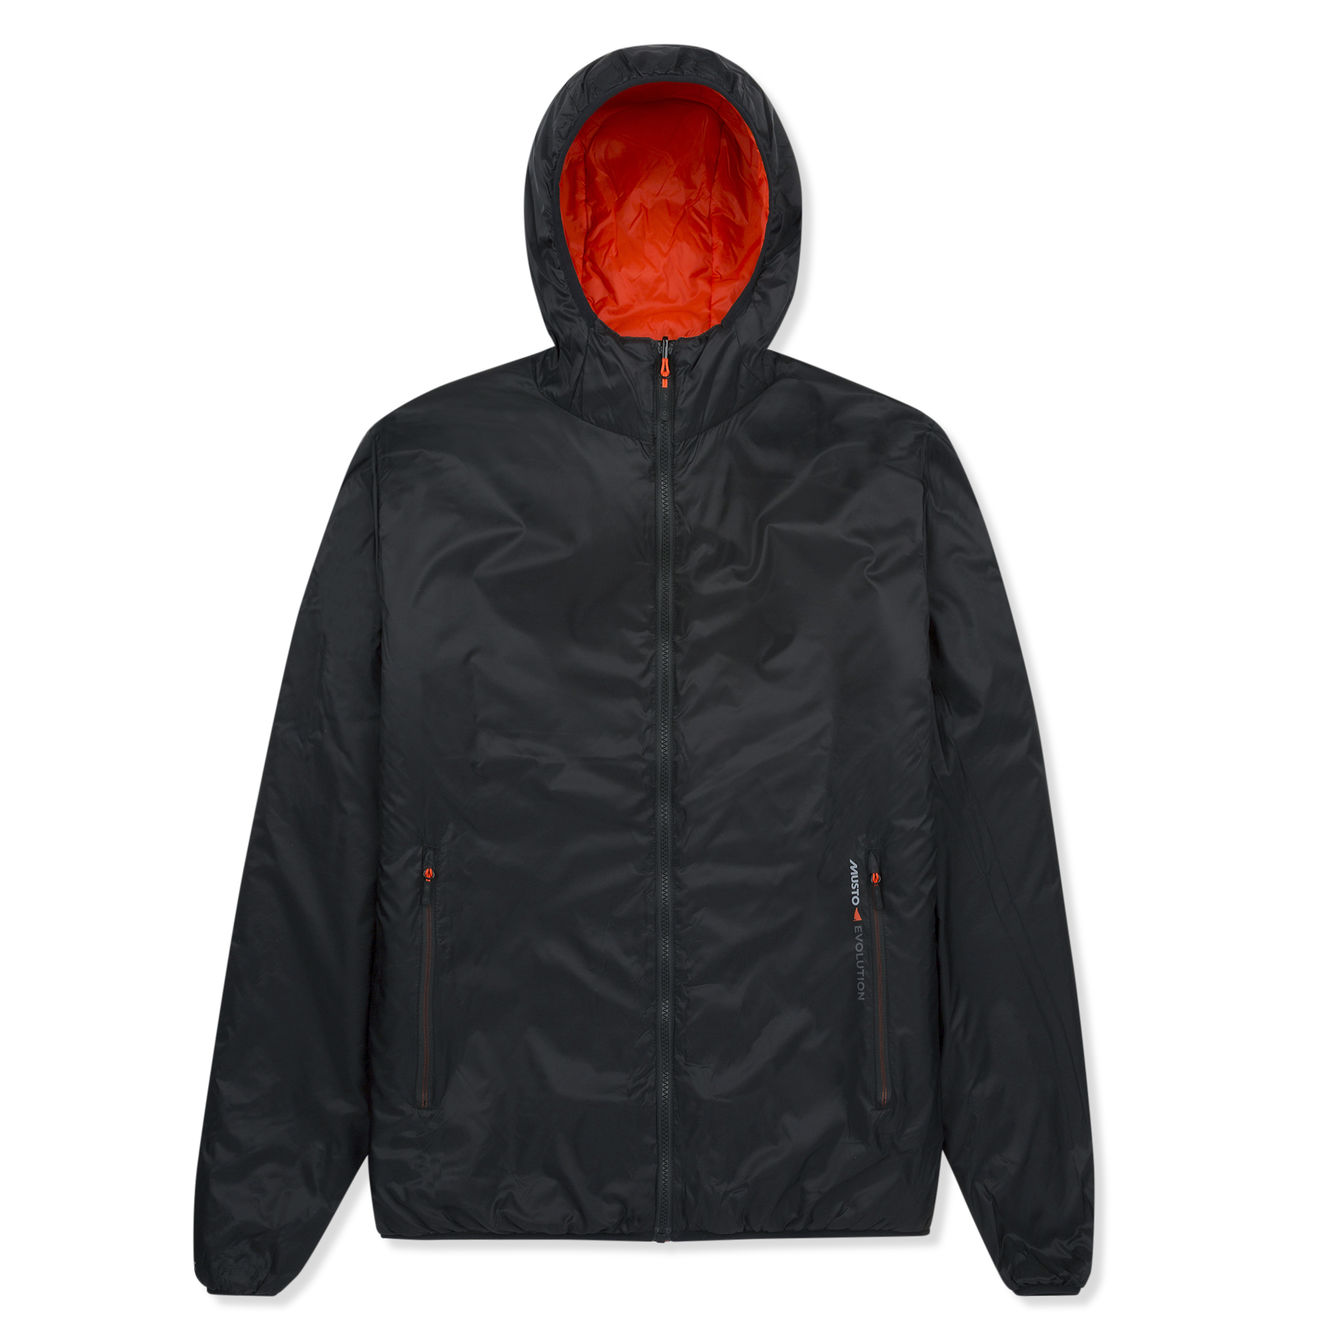 SPLICE PL JACKET